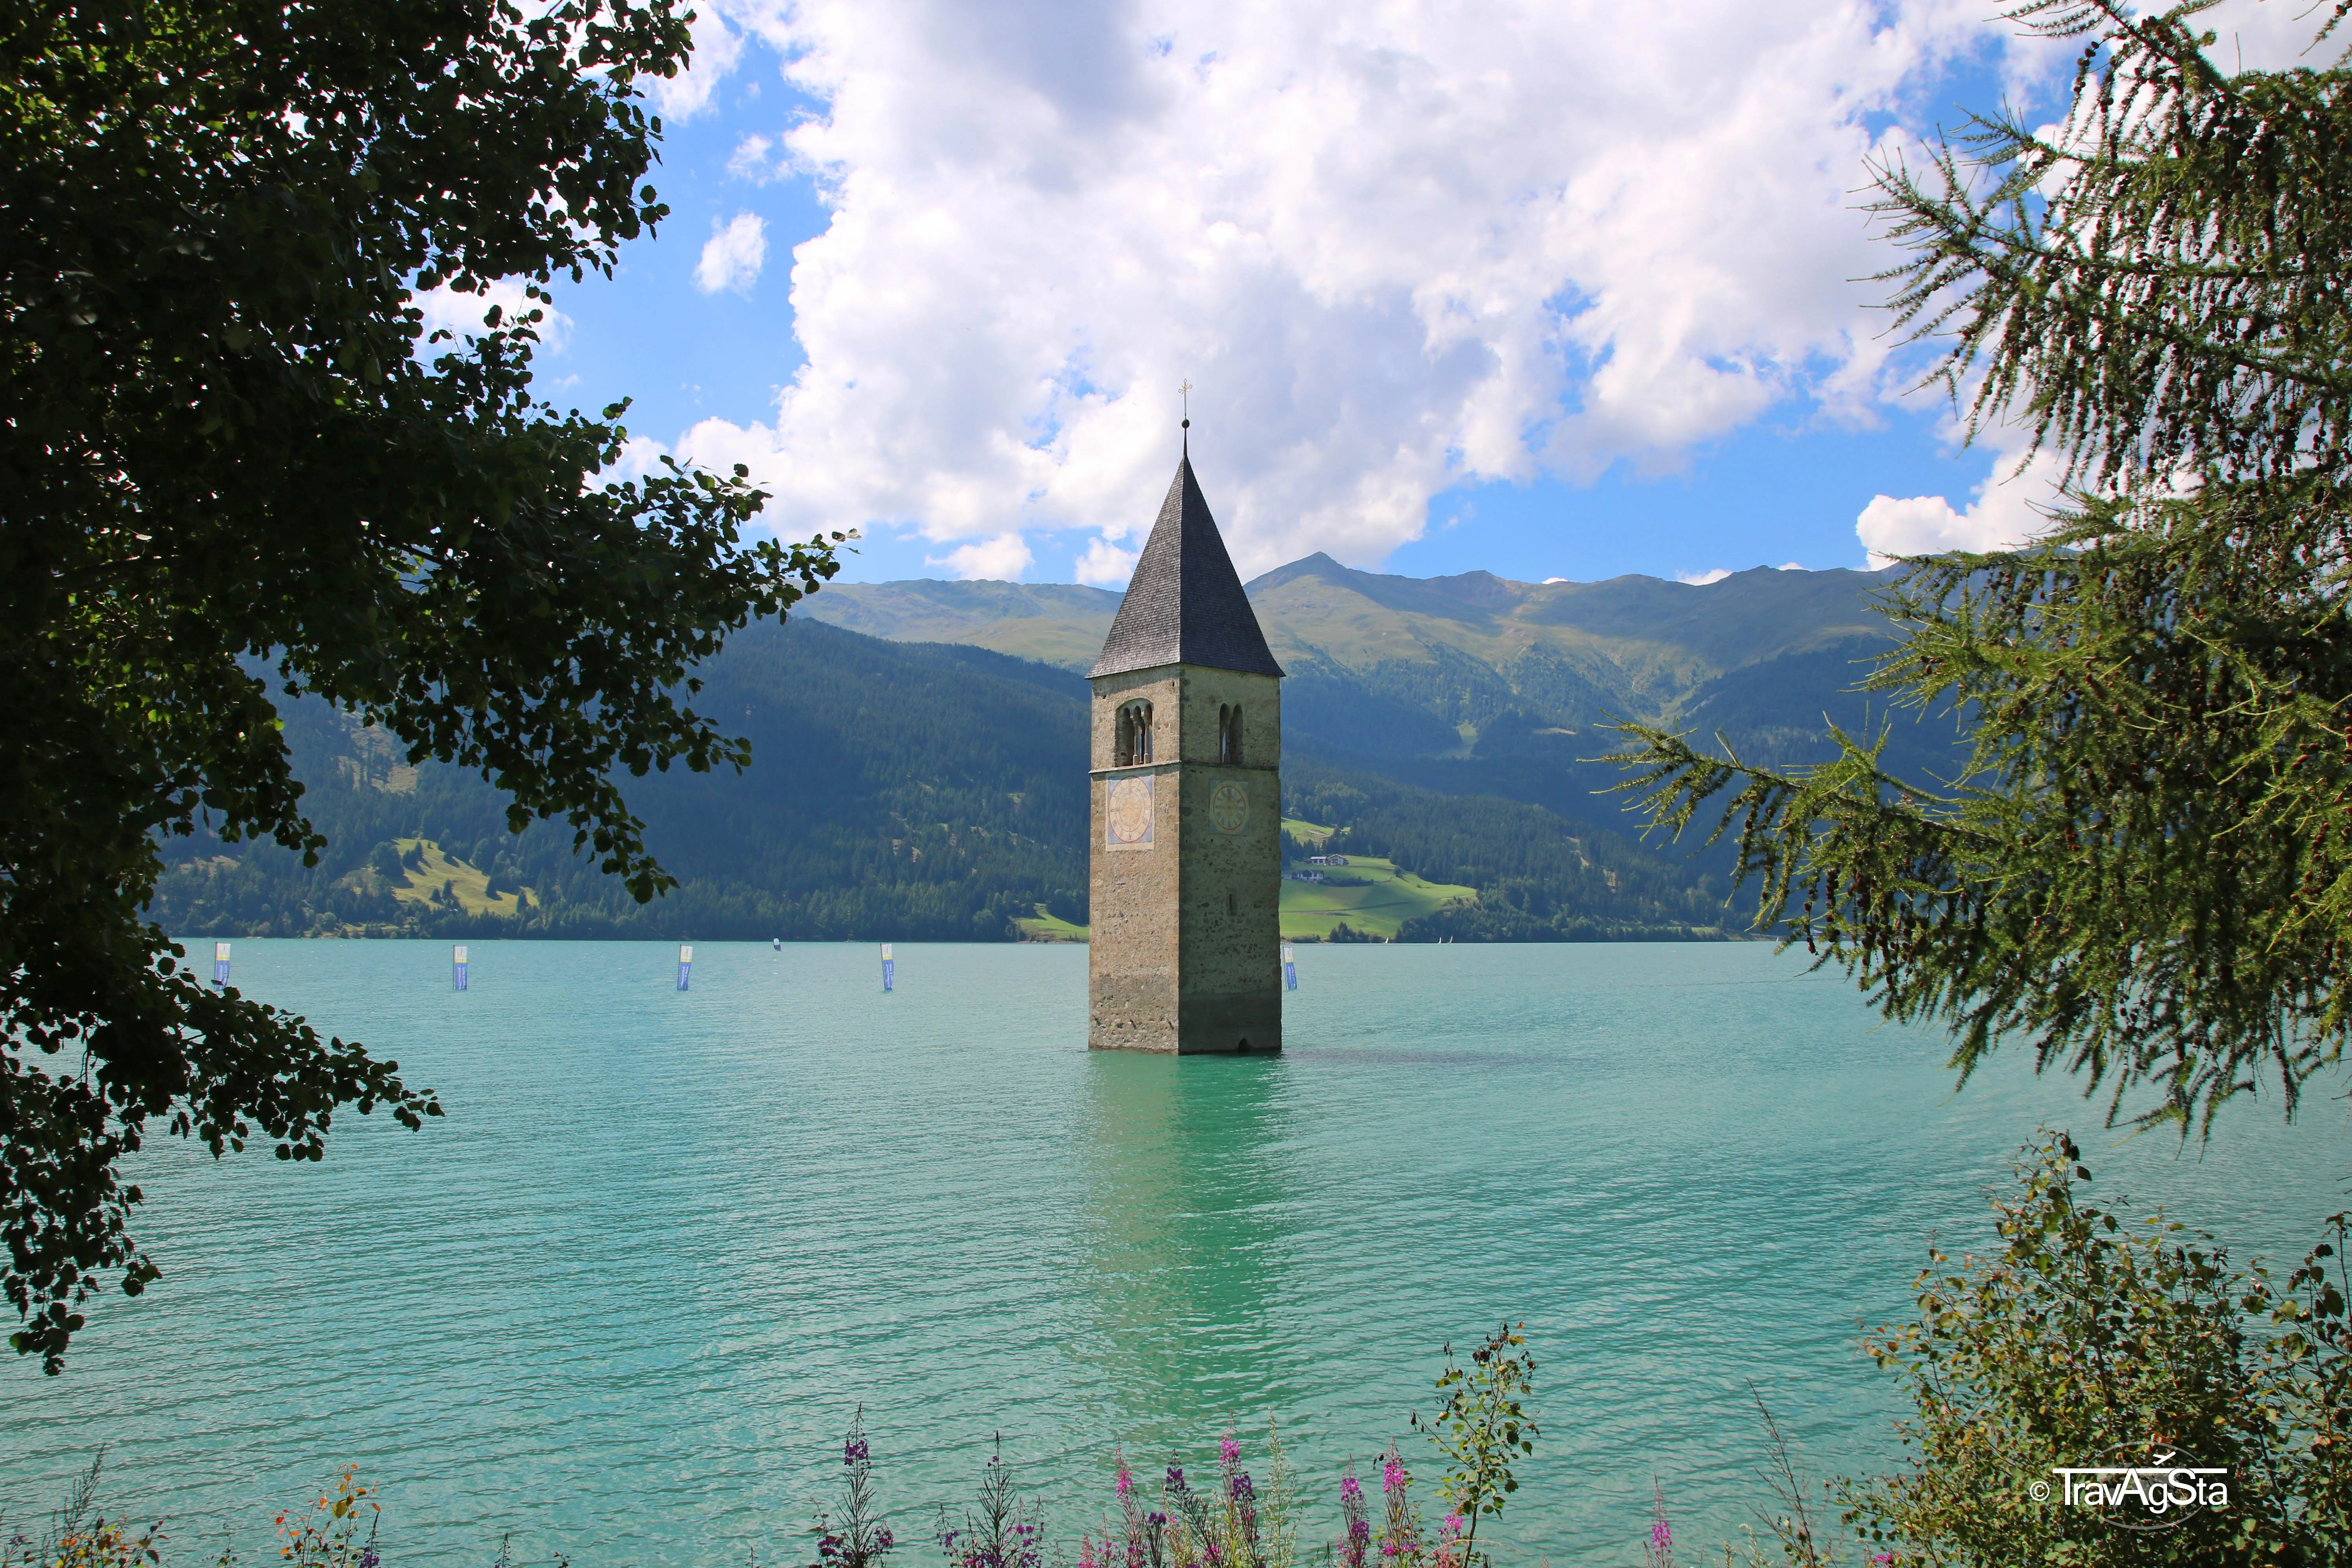 Europe's most beautiful lakefront cities!